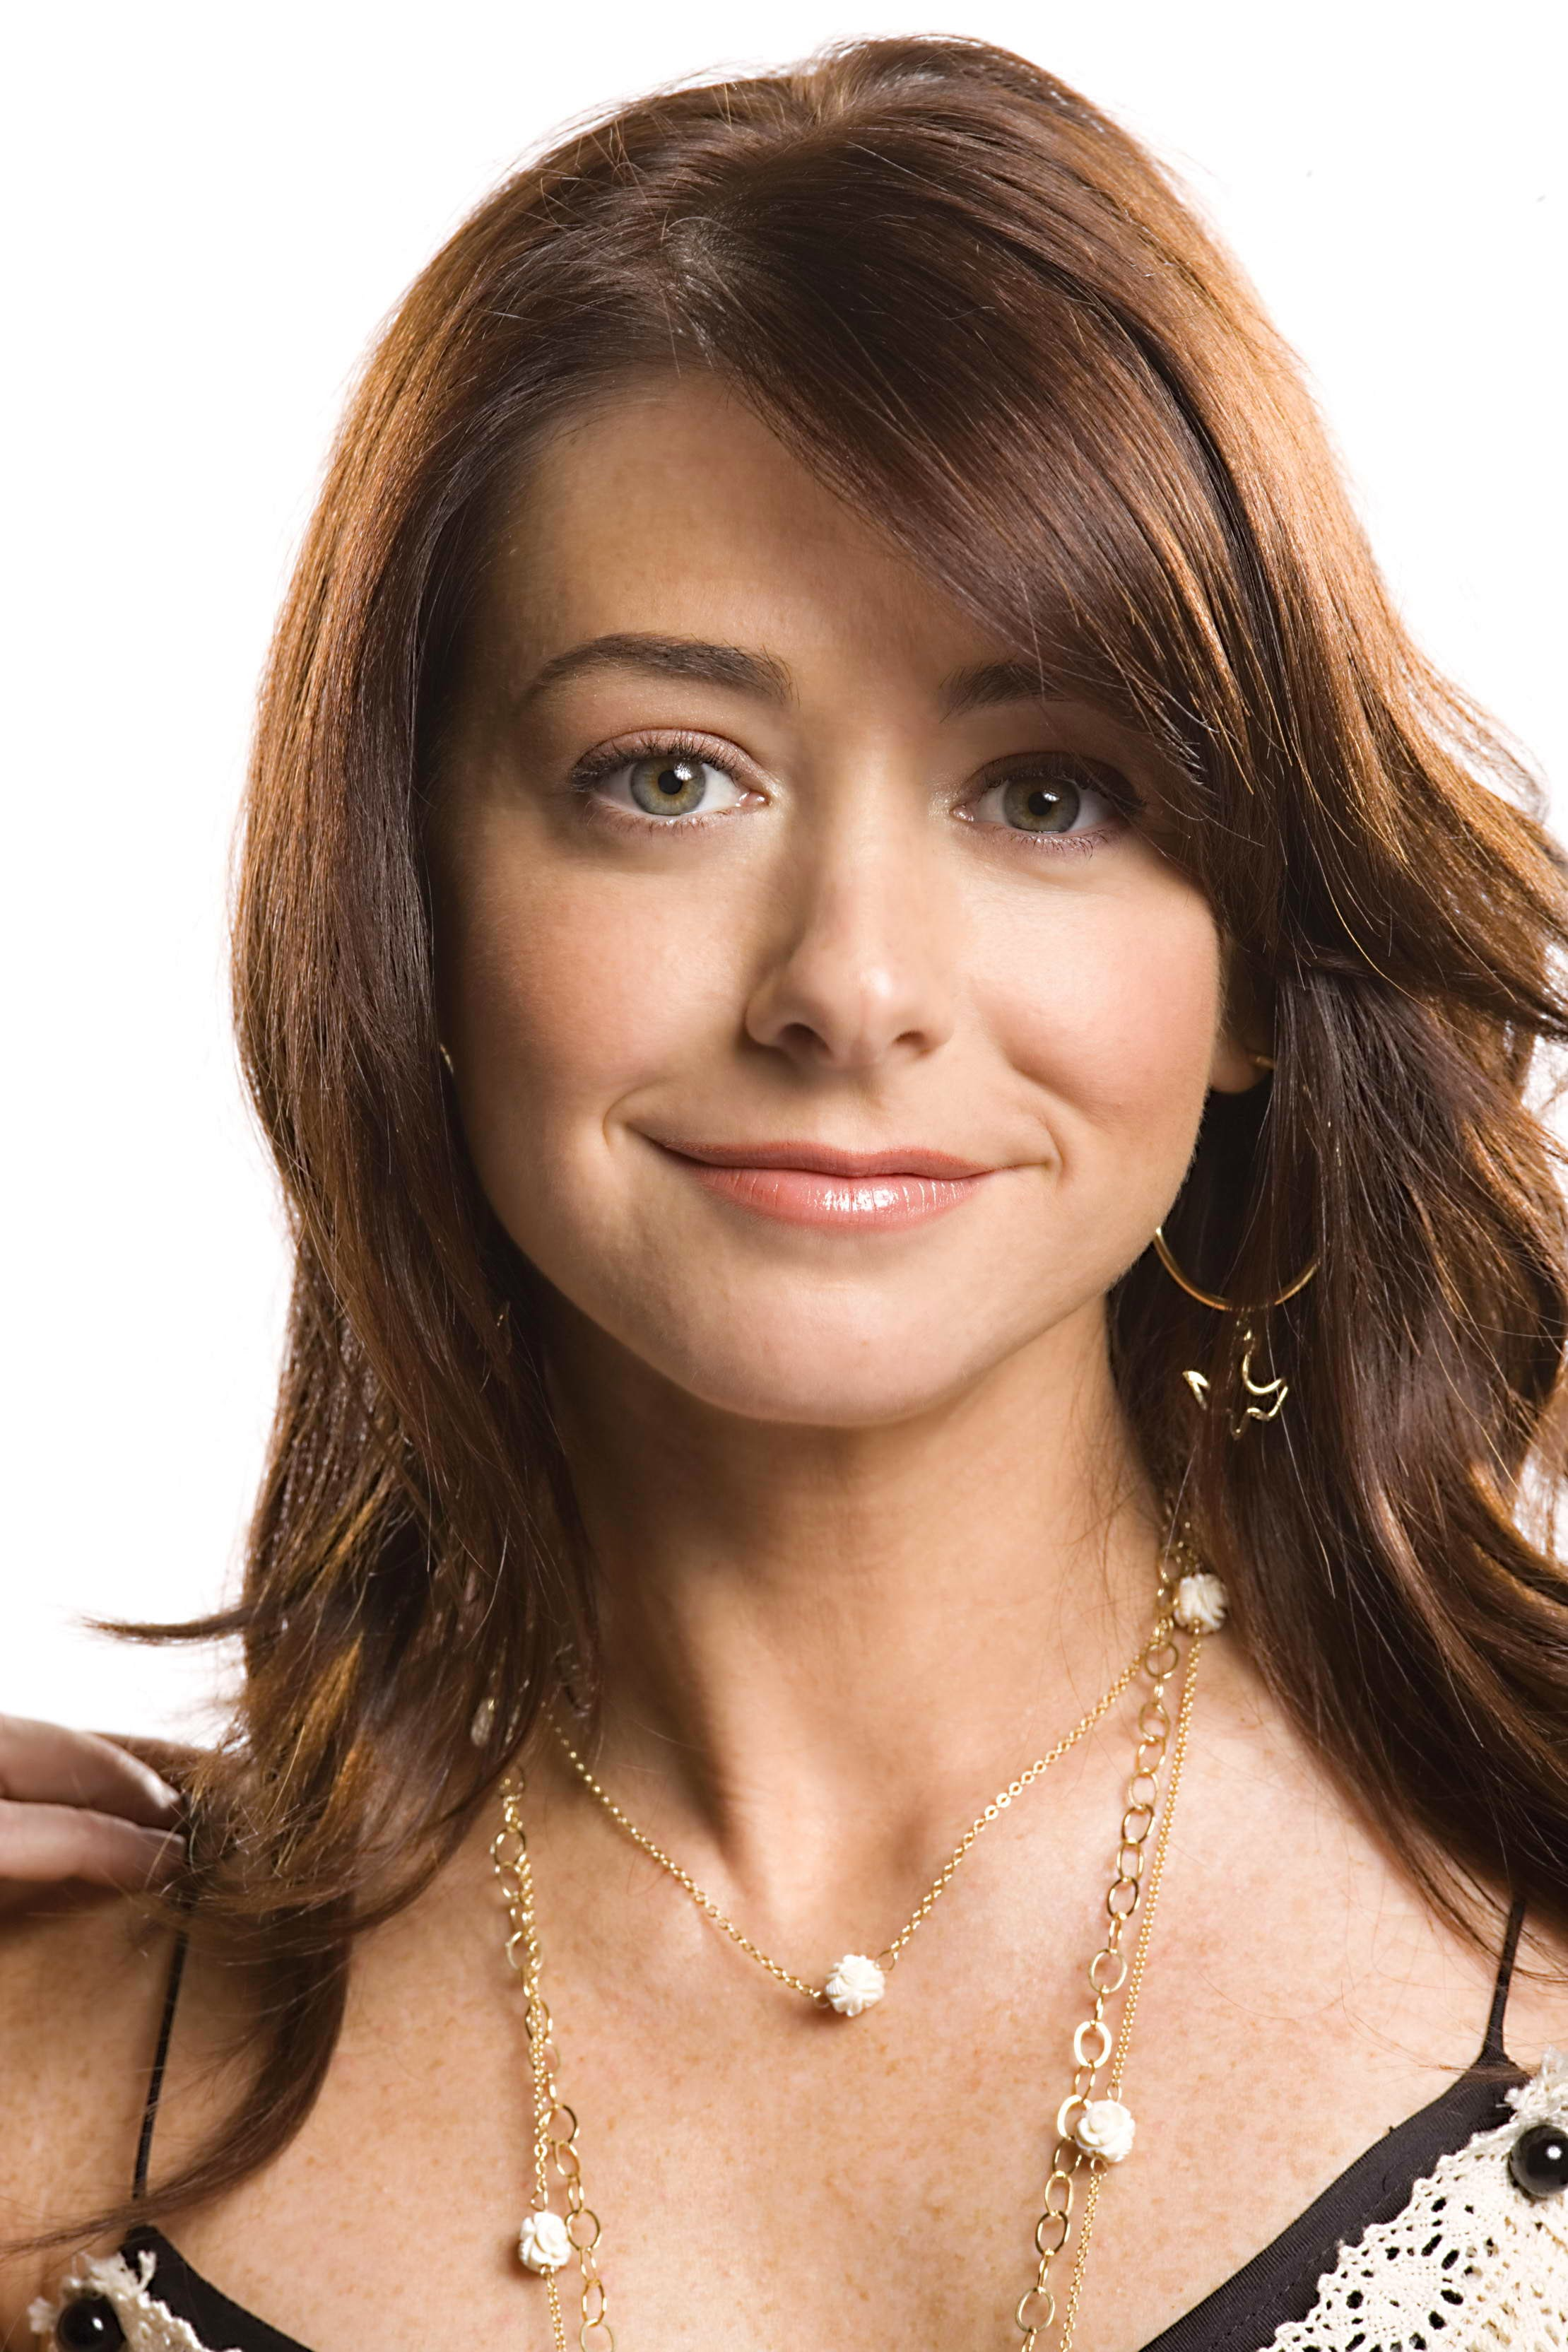 Alyson Hannigan nudes (83 pics), hacked Fappening, iCloud, butt 2017